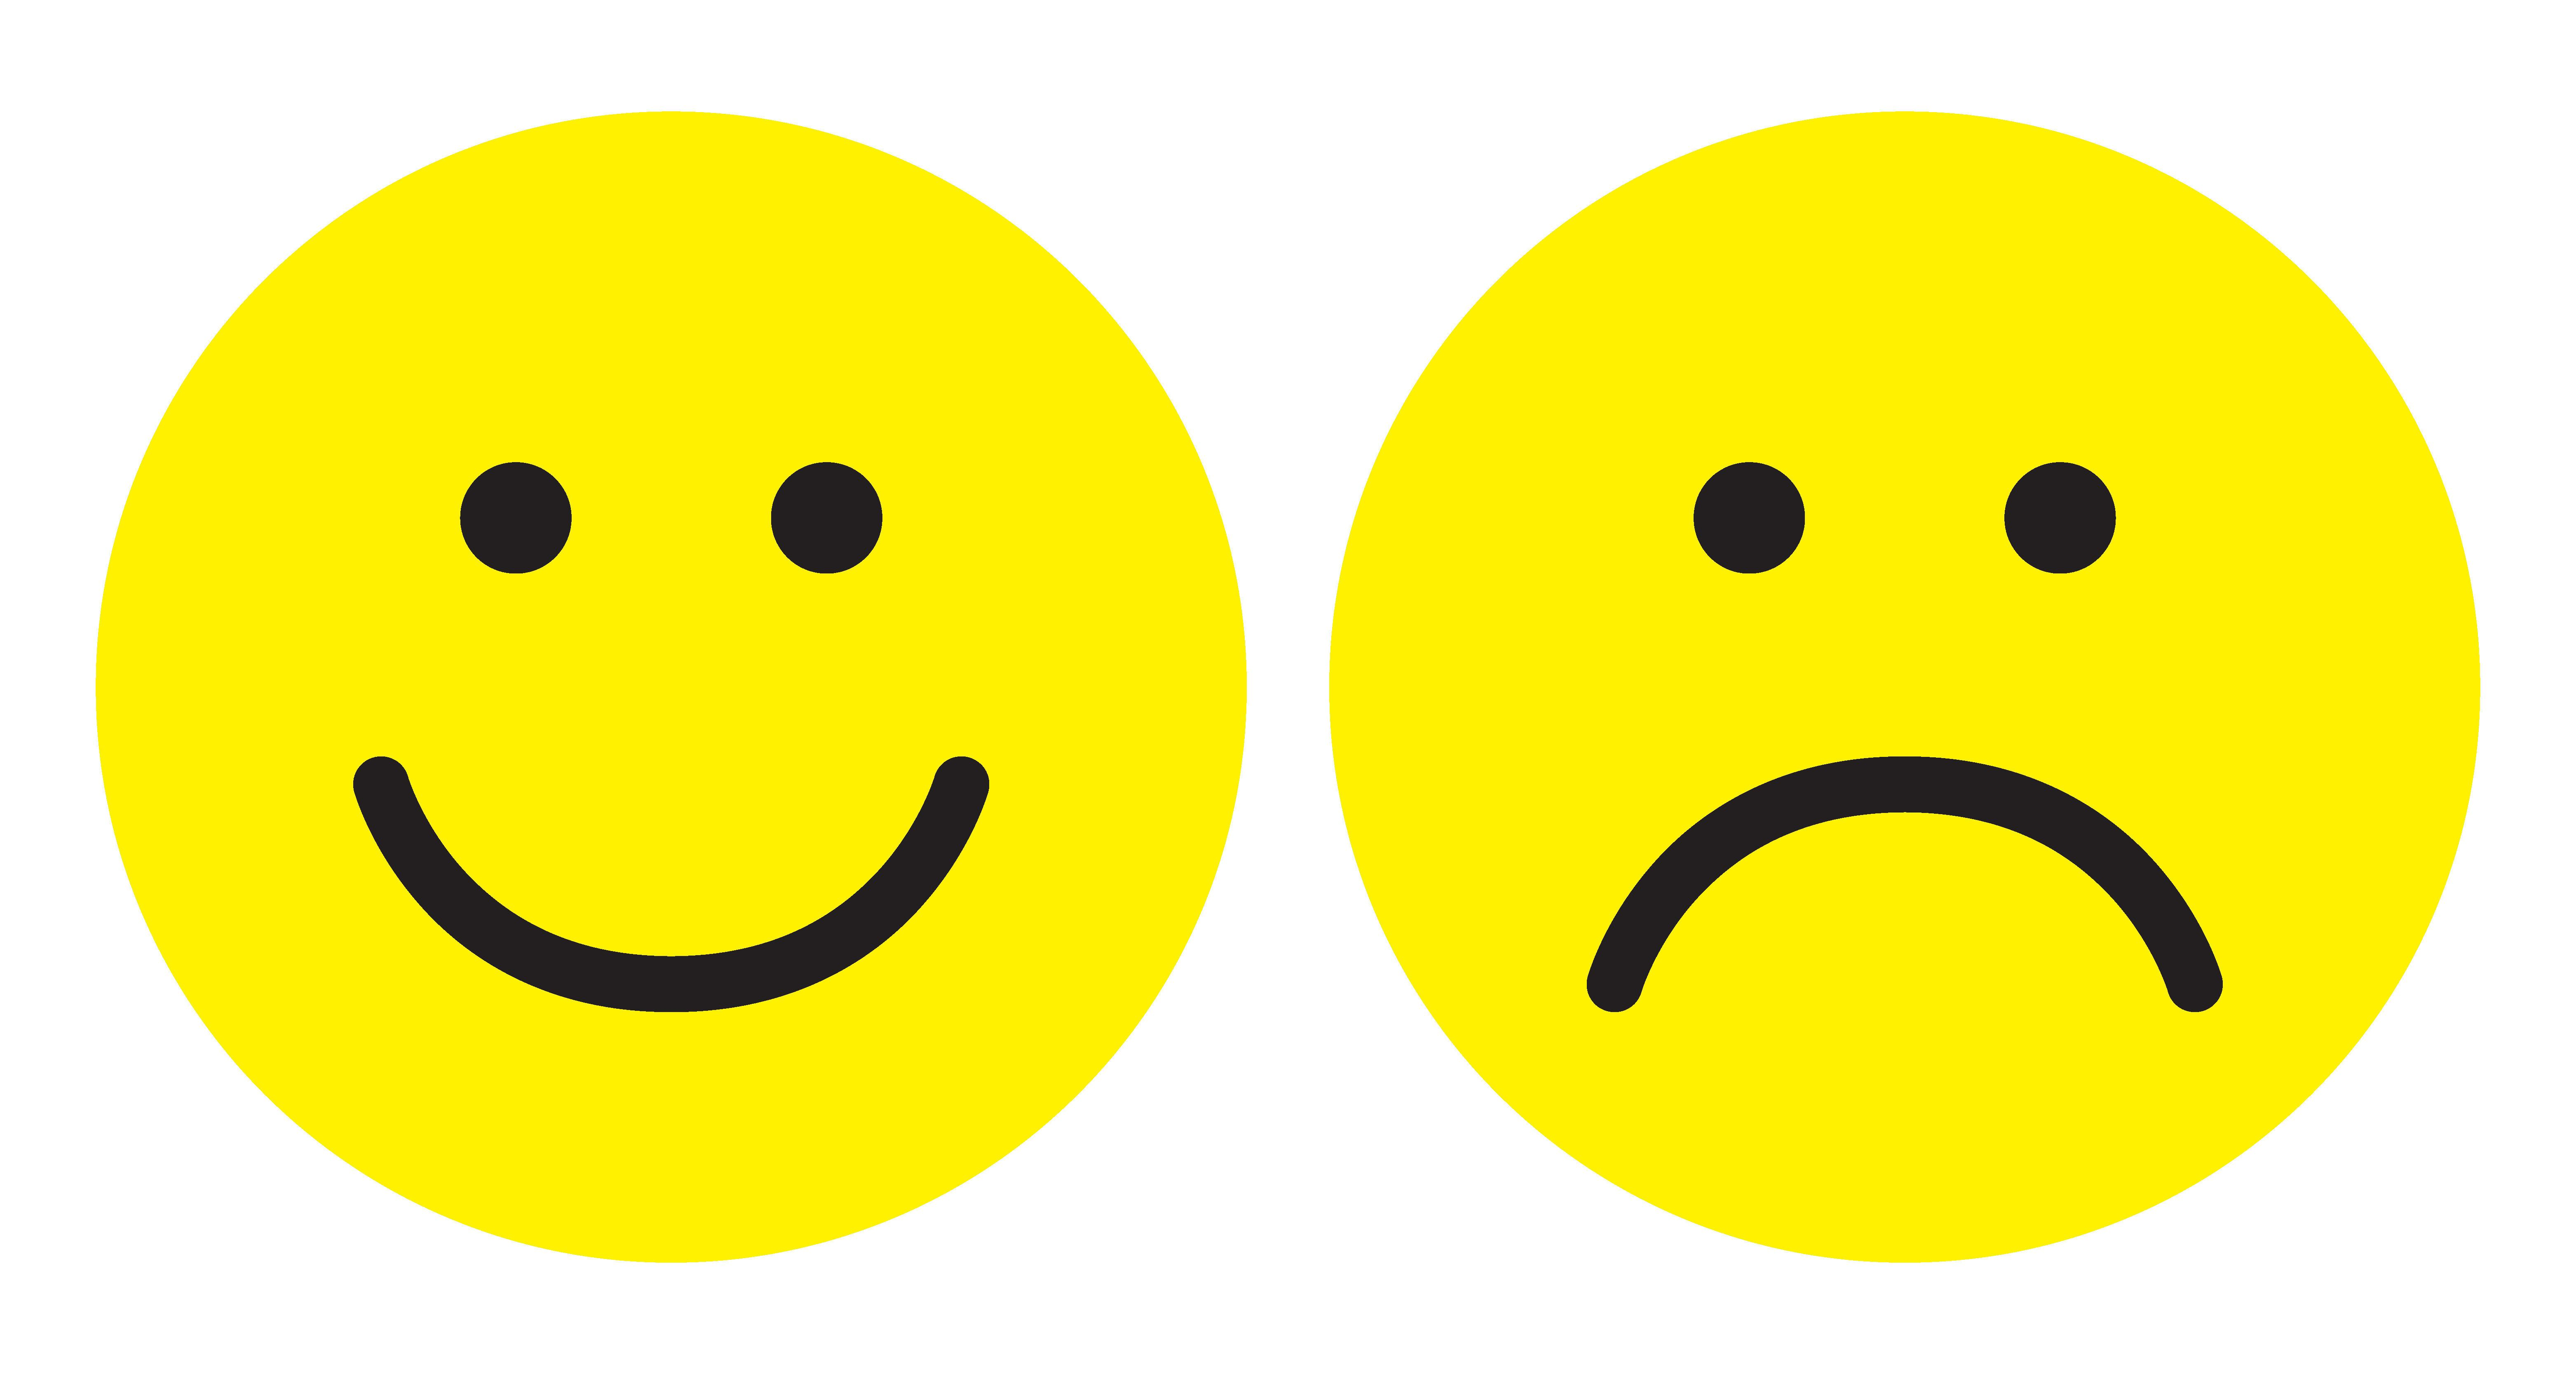 Happy and sad face icons. Smiley. Face symbols. Flat stile. Black and white vector illustration.